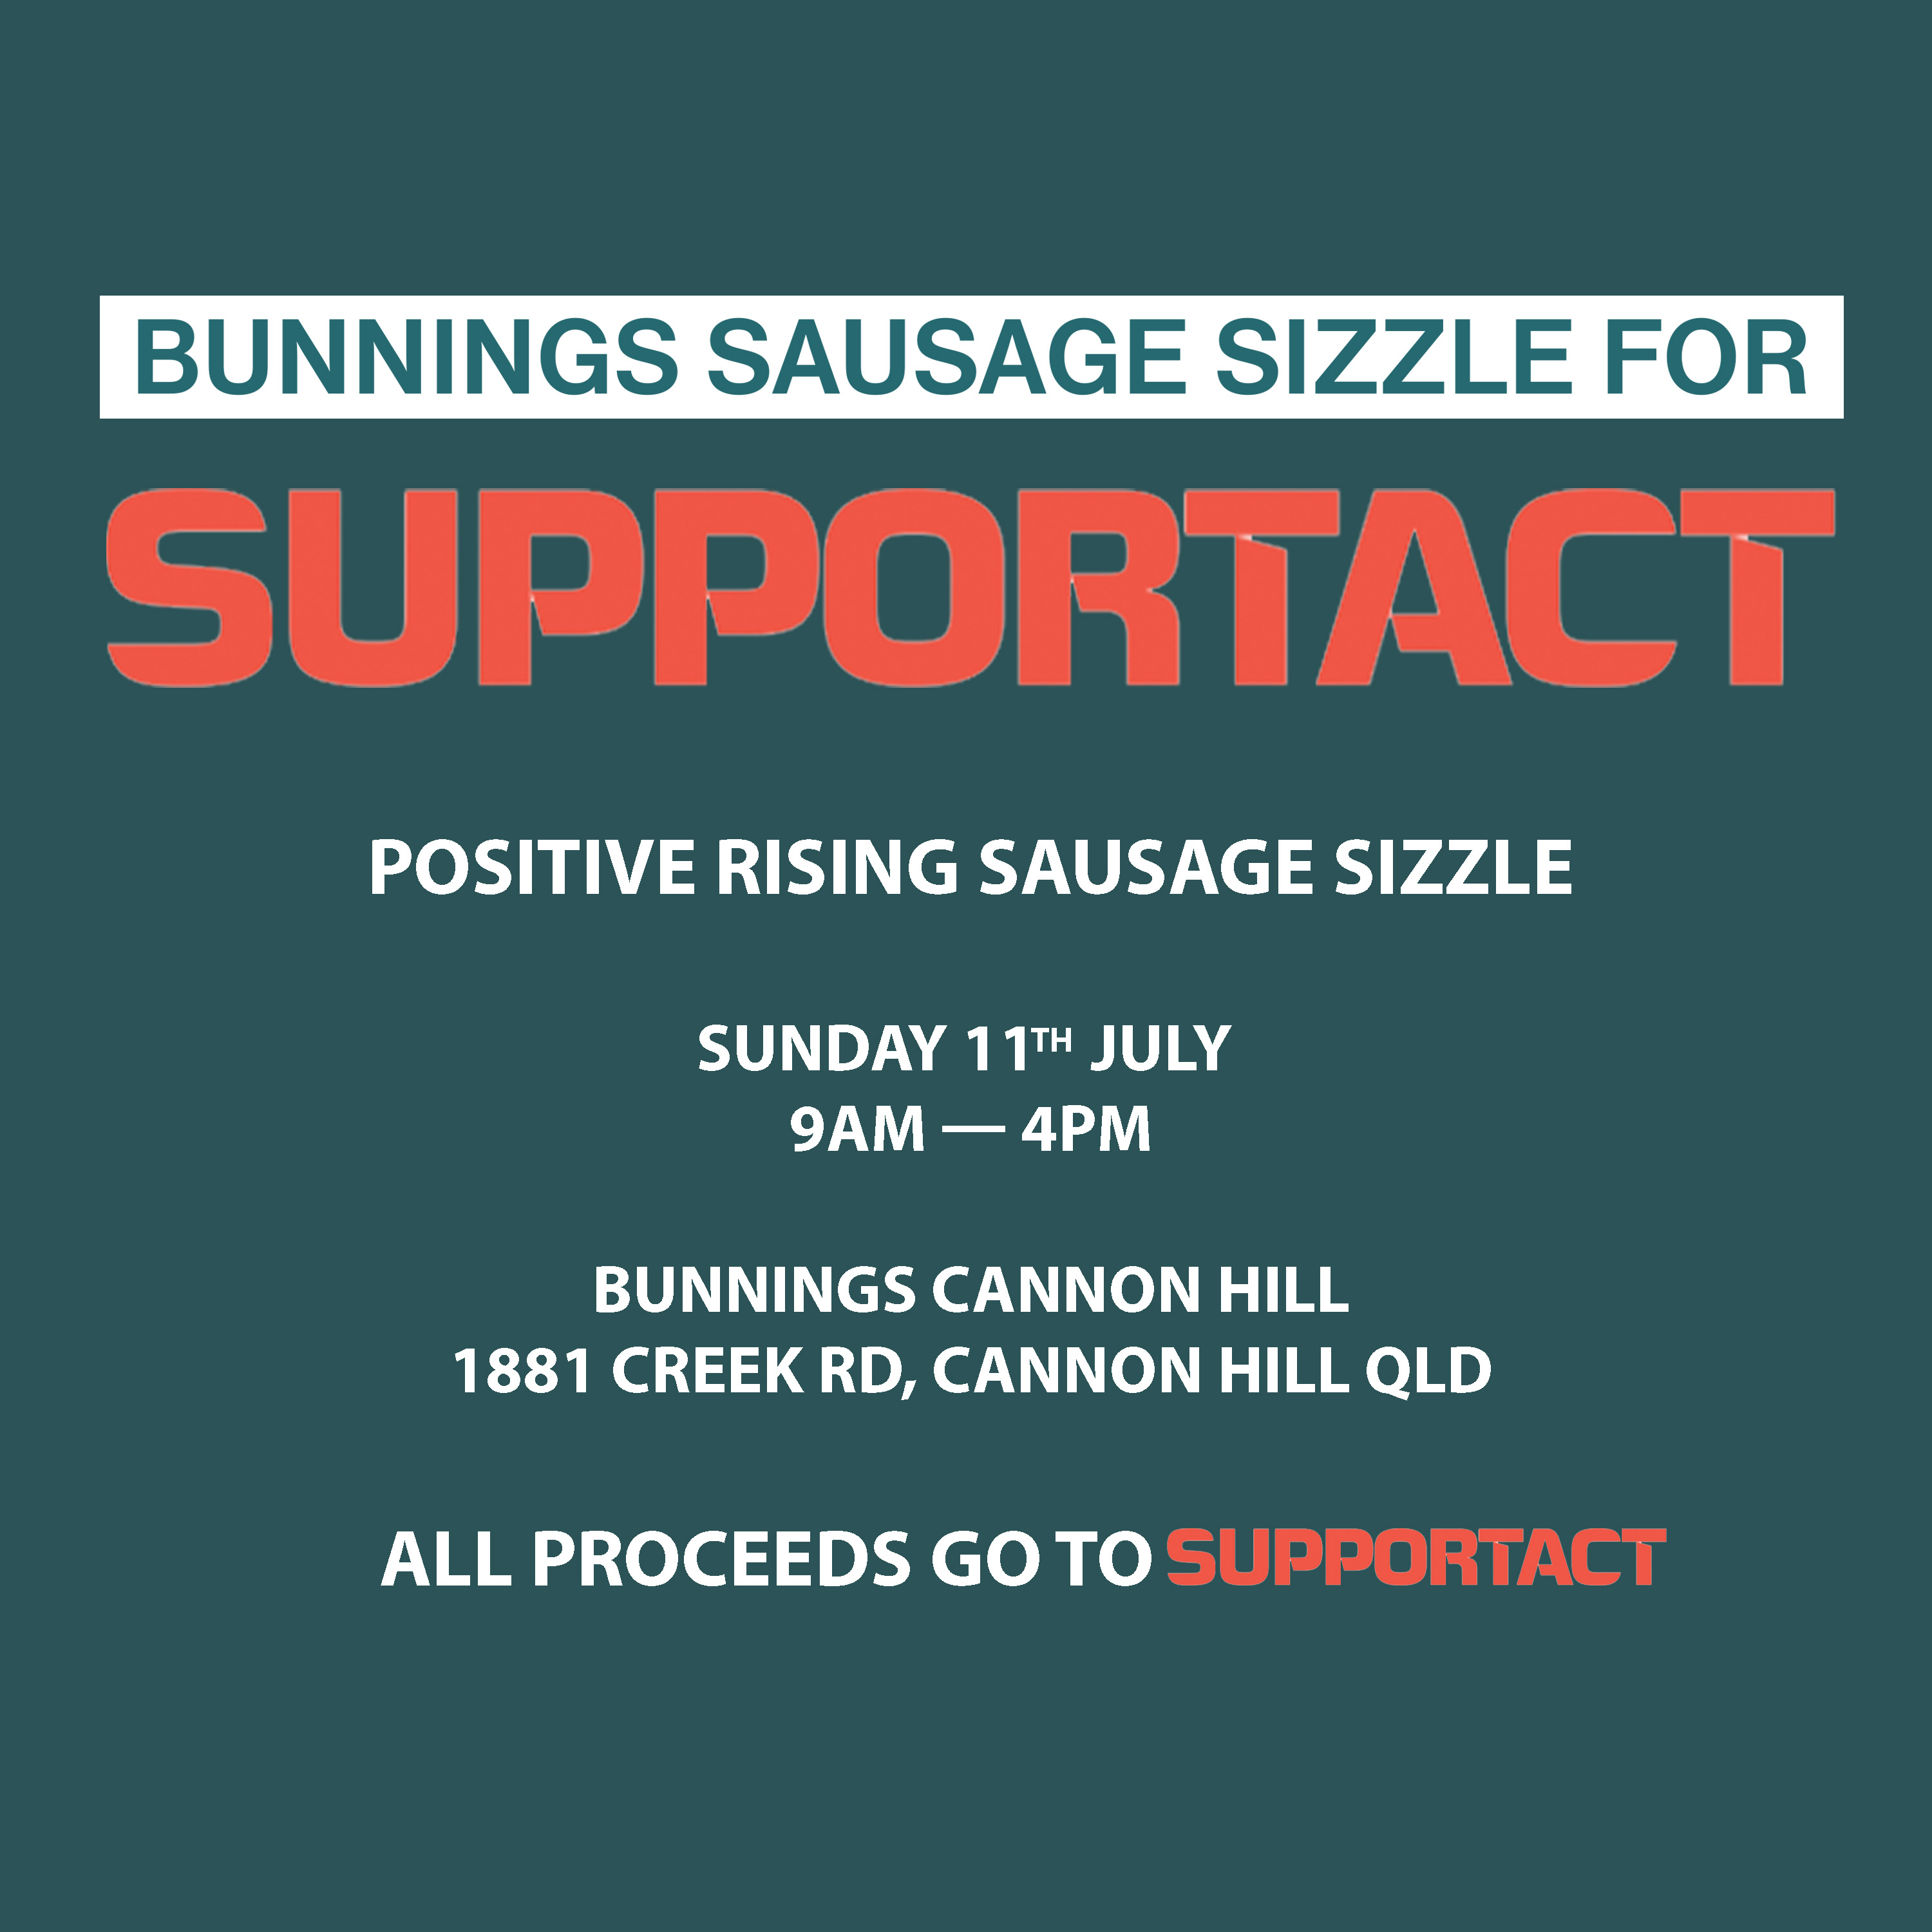 DZ Deathrays Will Be Jumping On The BBQ Tools At A QLD Bunnings To Raise Funds For Support Act